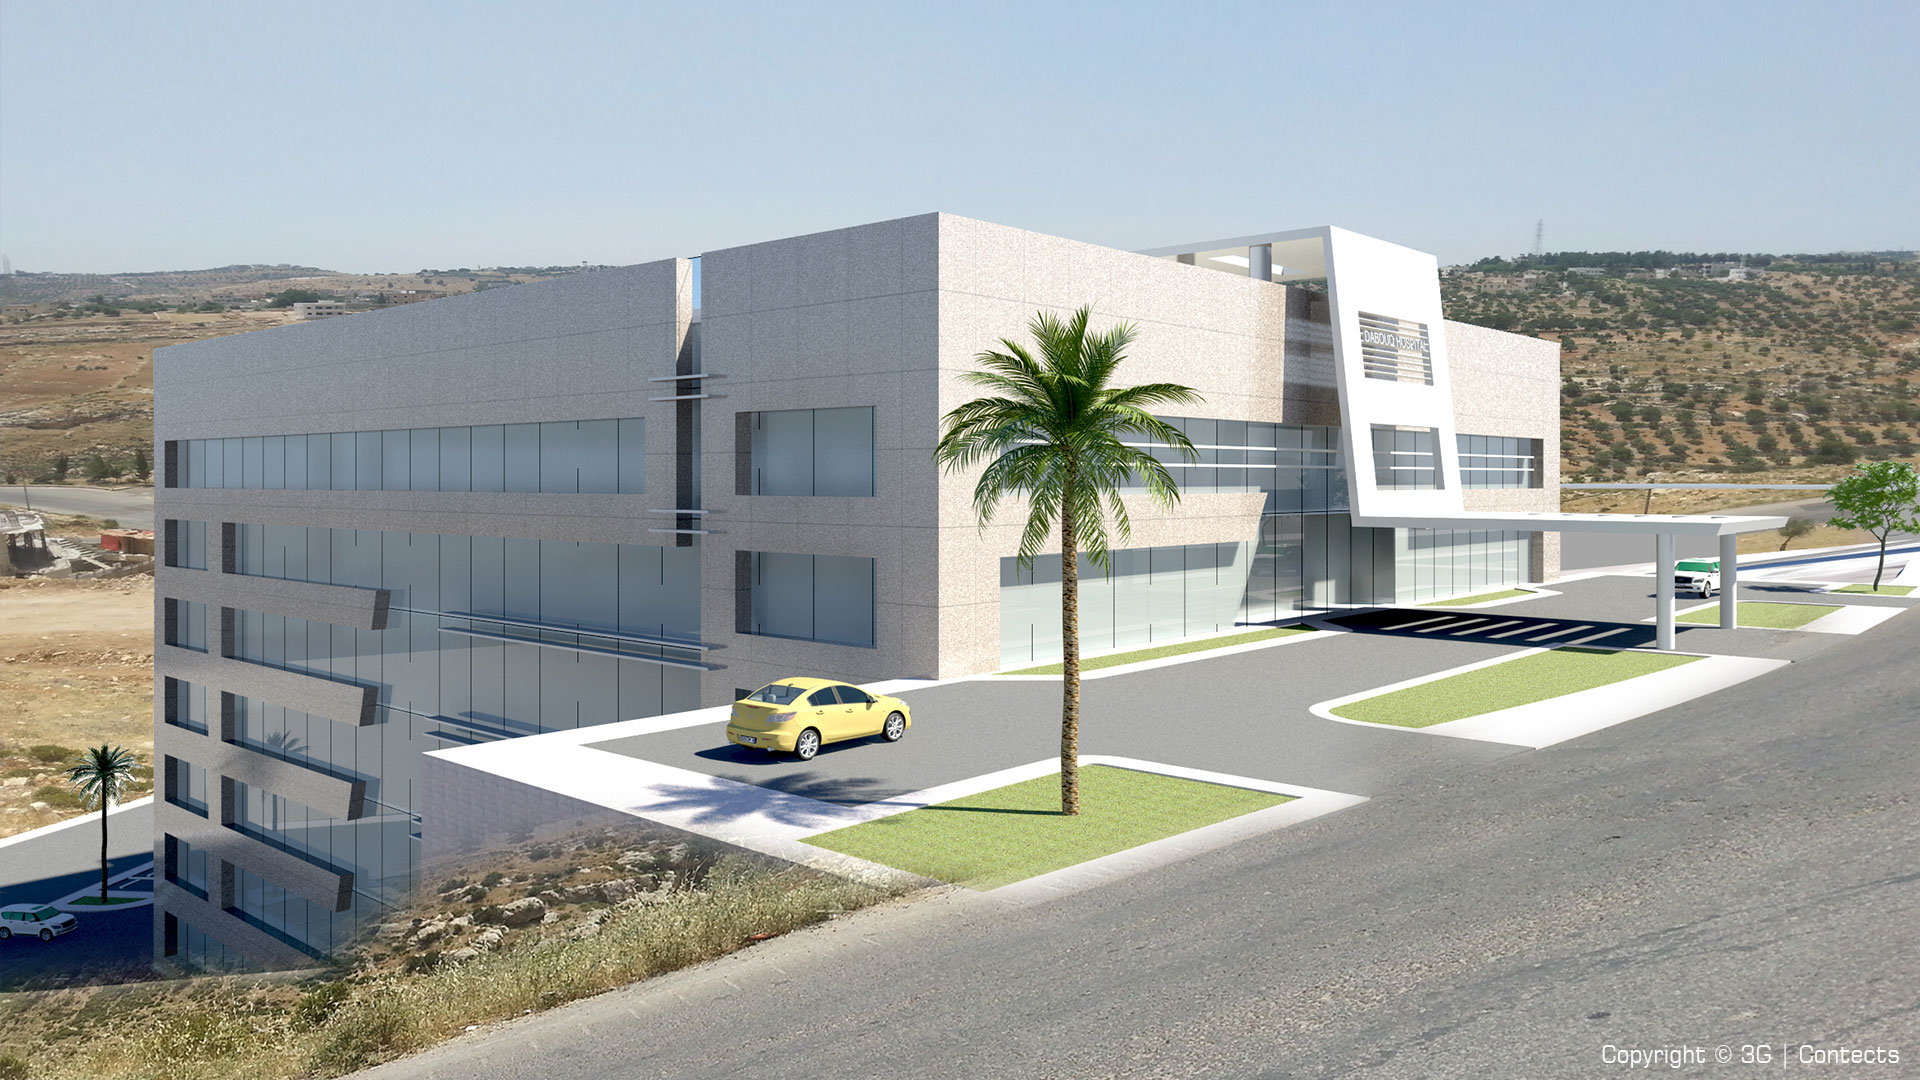 Zayed Military Hospital (Al-Ain) Expansion